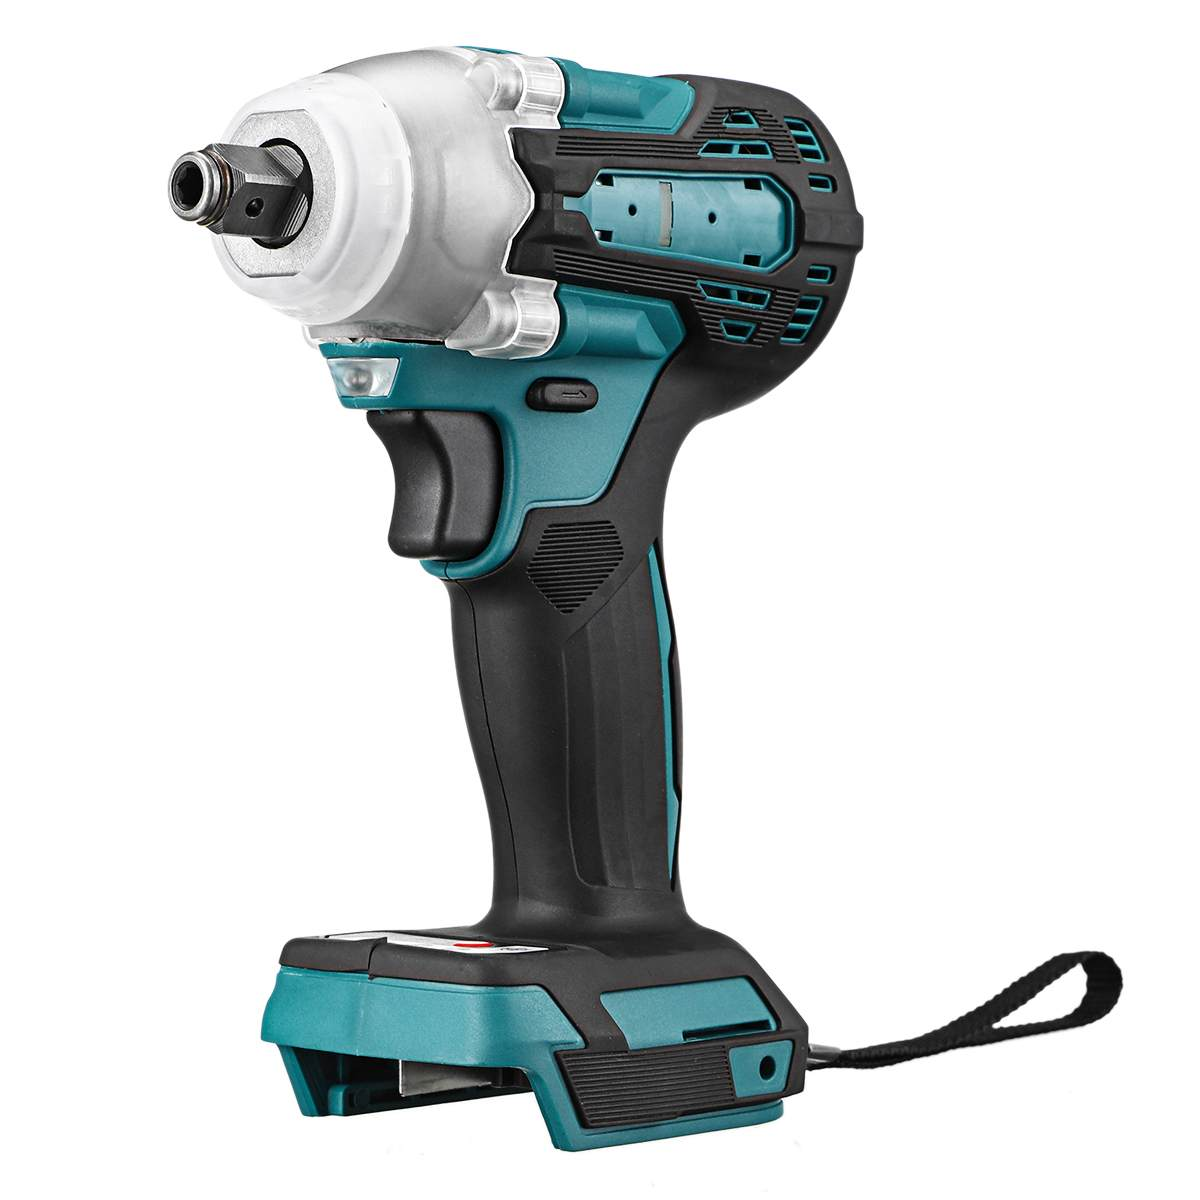 1 Wrench Torque Socket Electric Brushless Power 18V Without Wrench Tool Electric 800Nm Battery Cordless Wrench 2 Impact